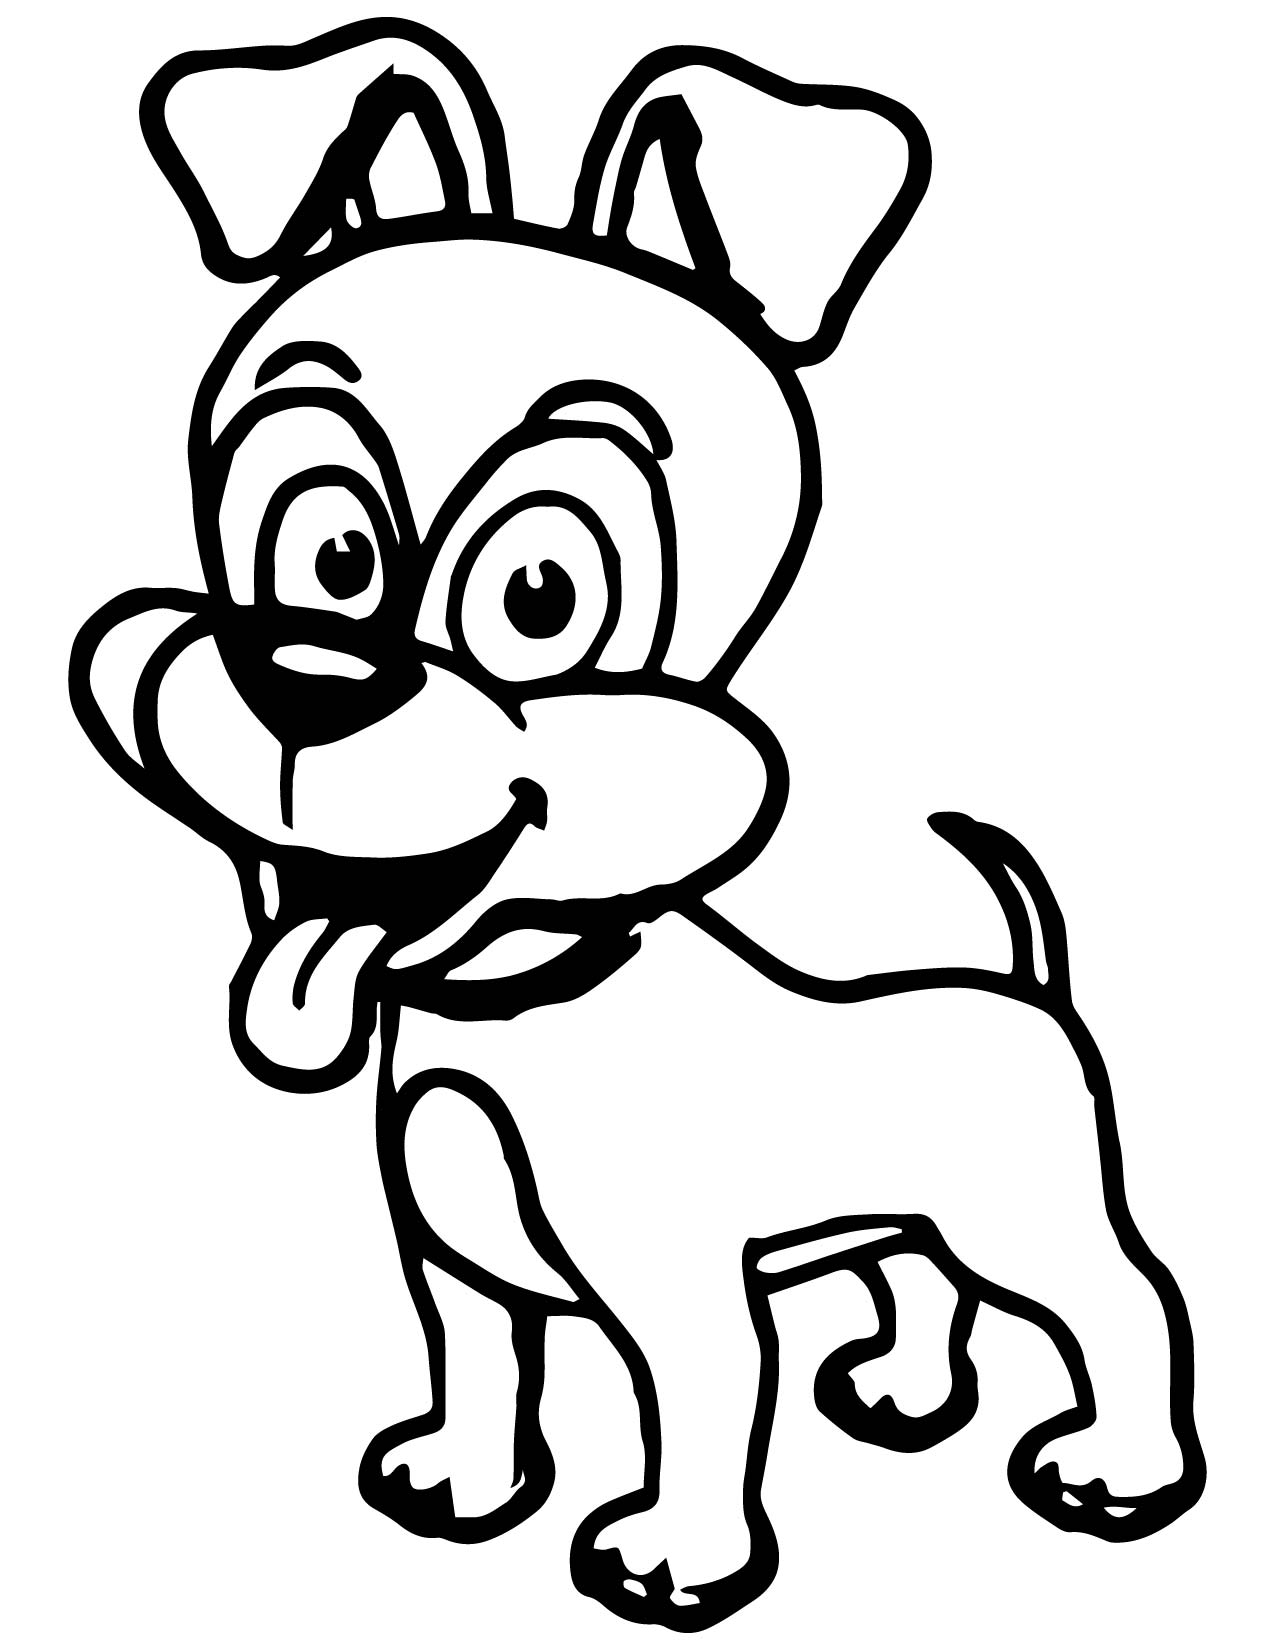 cute cartoon dog coloring pages - photo#6